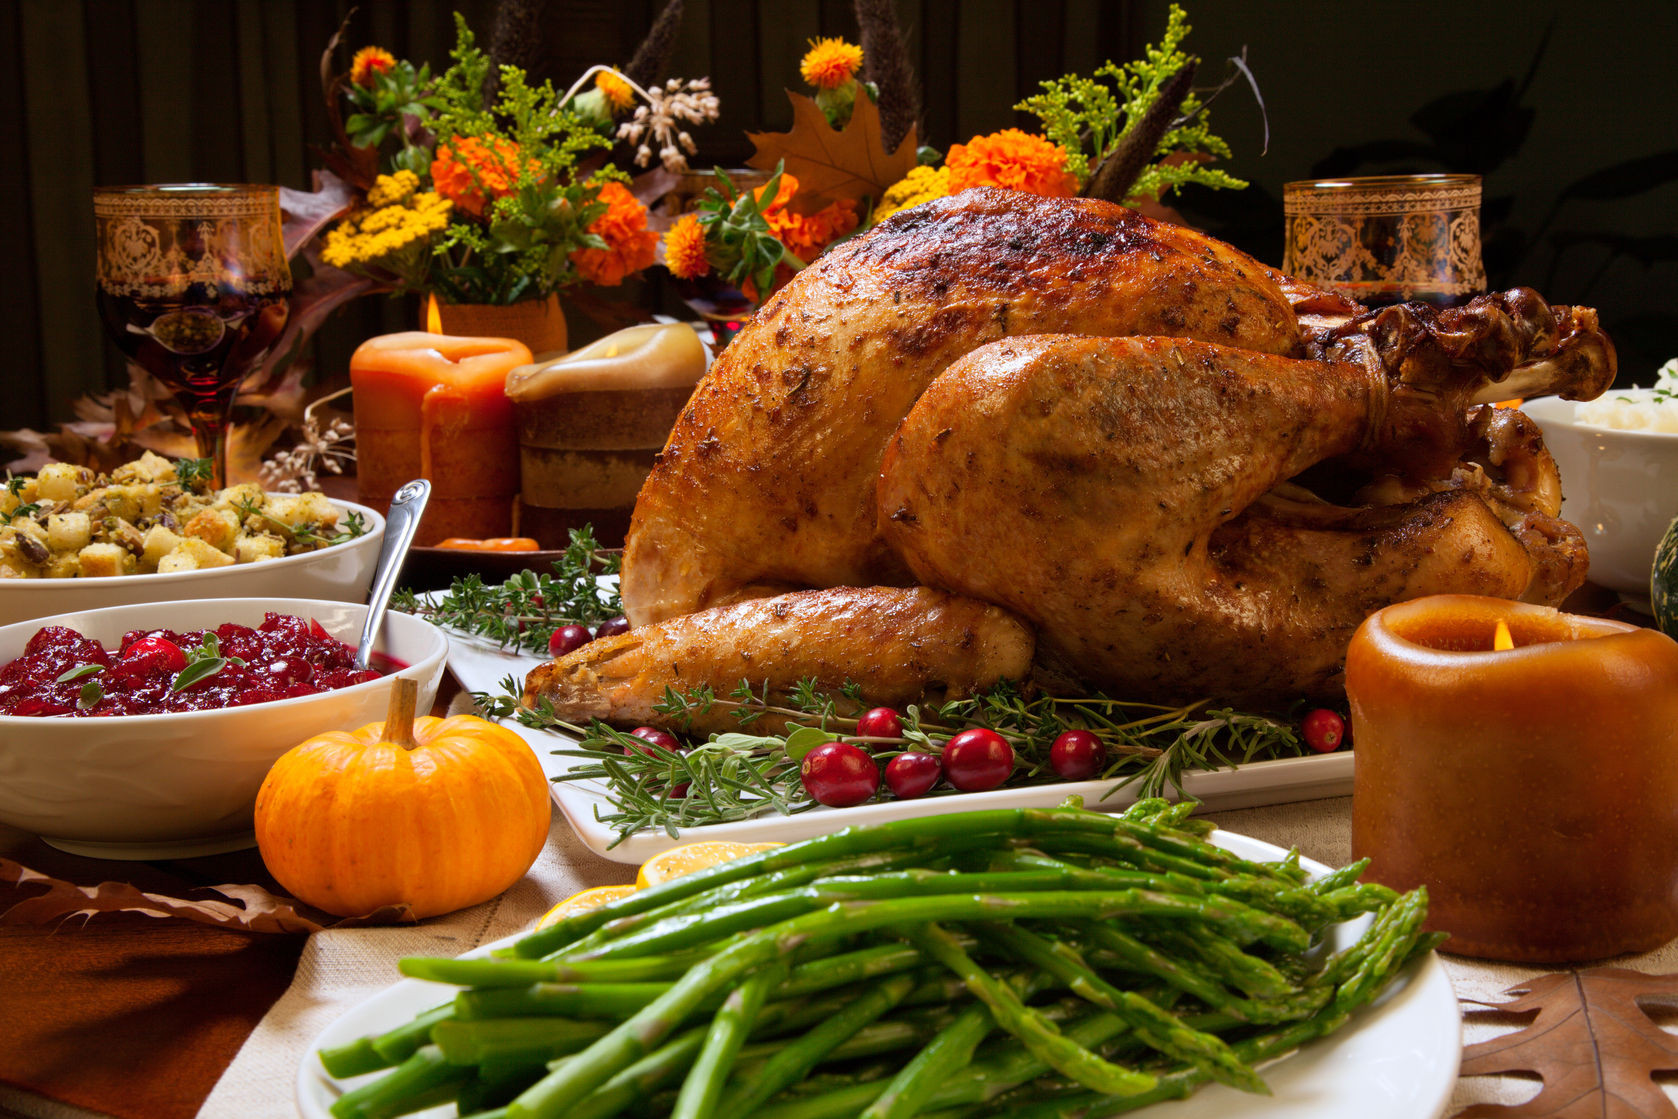 Turkey Pictures For Thanksgiving  Festive Thanksgiving Tablescape Ideas Brock Built